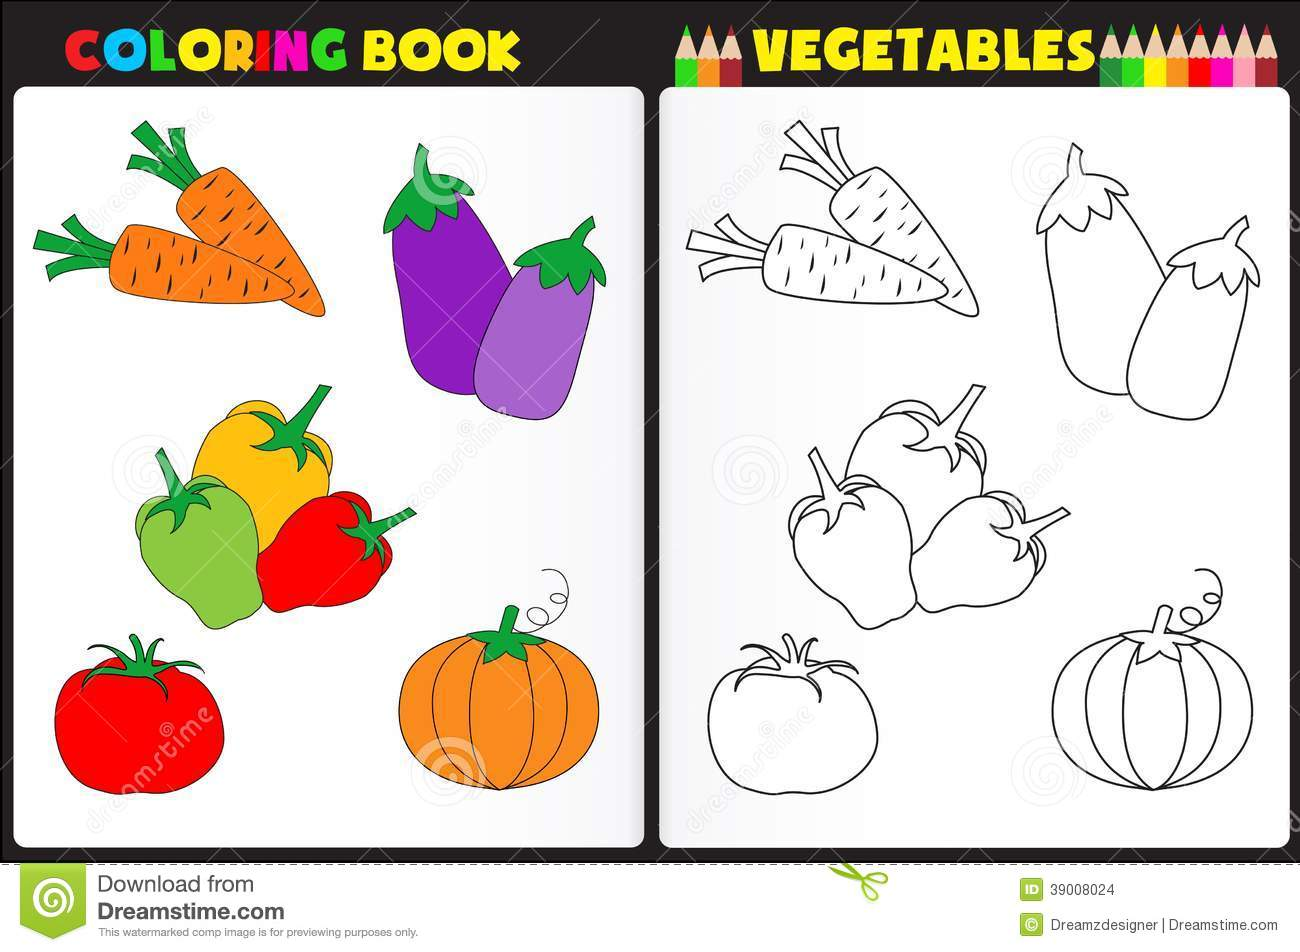 Stock Images Coloring Book Vegetables Nature Page Kids Colorful Sketches To Color Image39008024 on Kindergarten Time Worksheets For All Download And